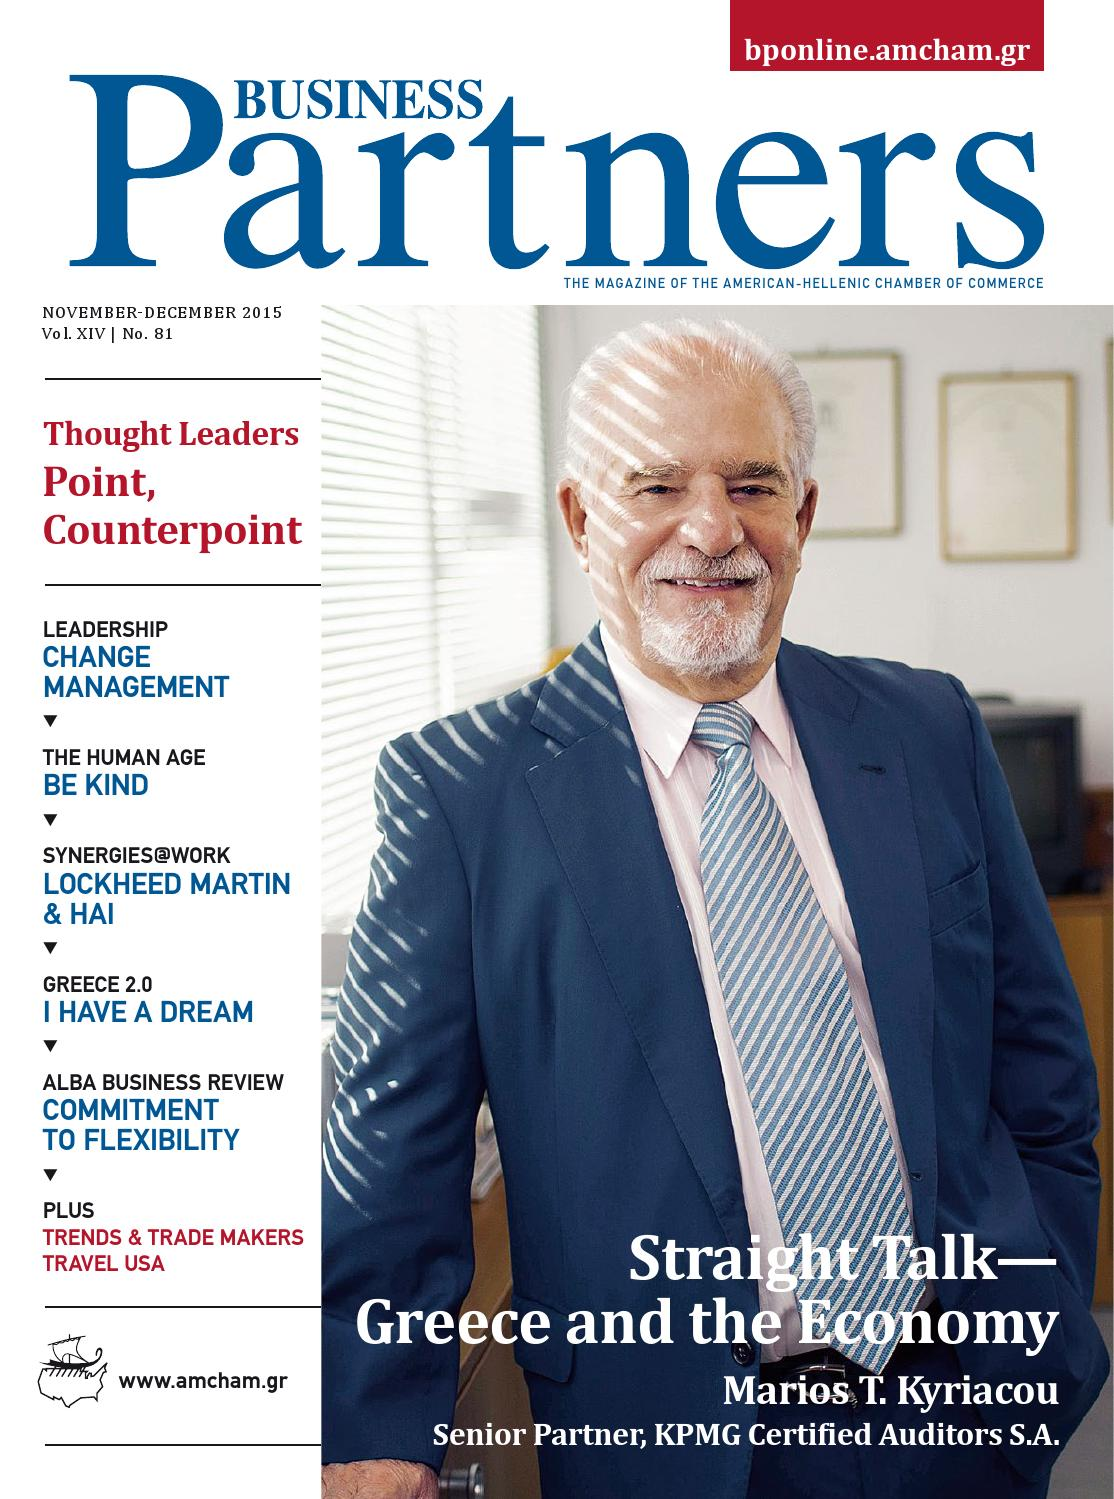 33f6e66ce Business Partners | November-December 2015 by Raymond Matera Publishing -  issuu